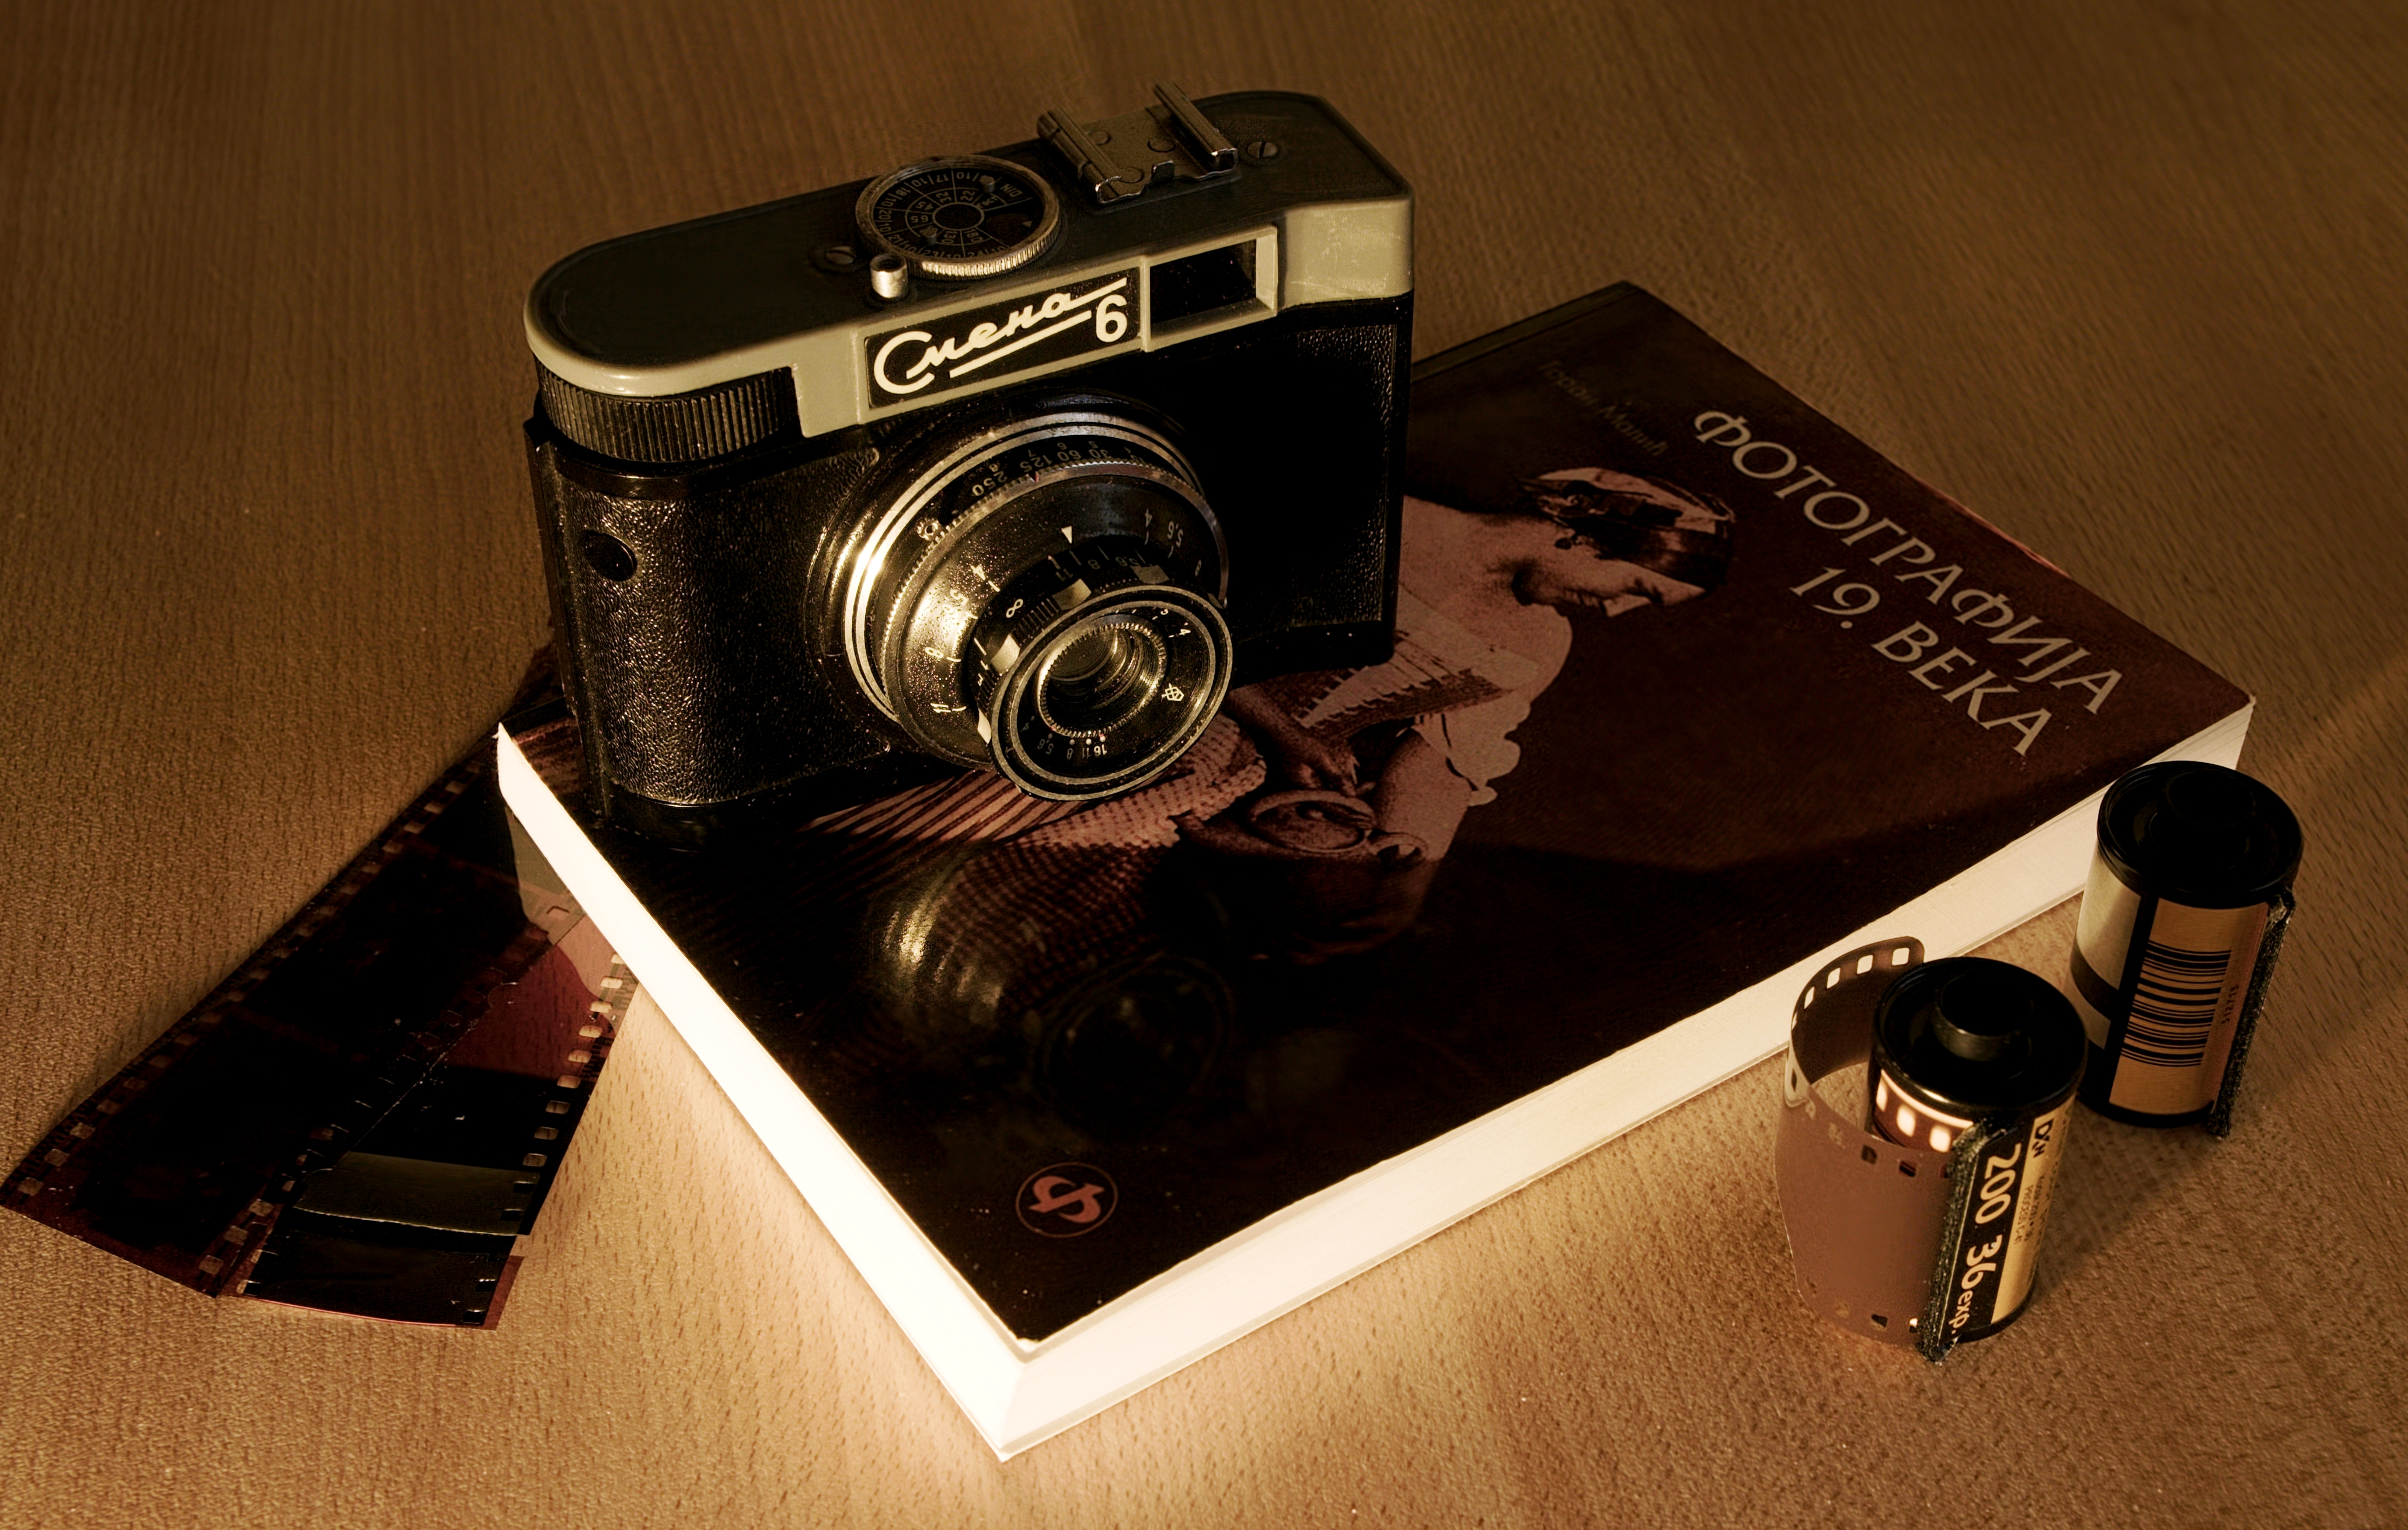 The origin and history of photography